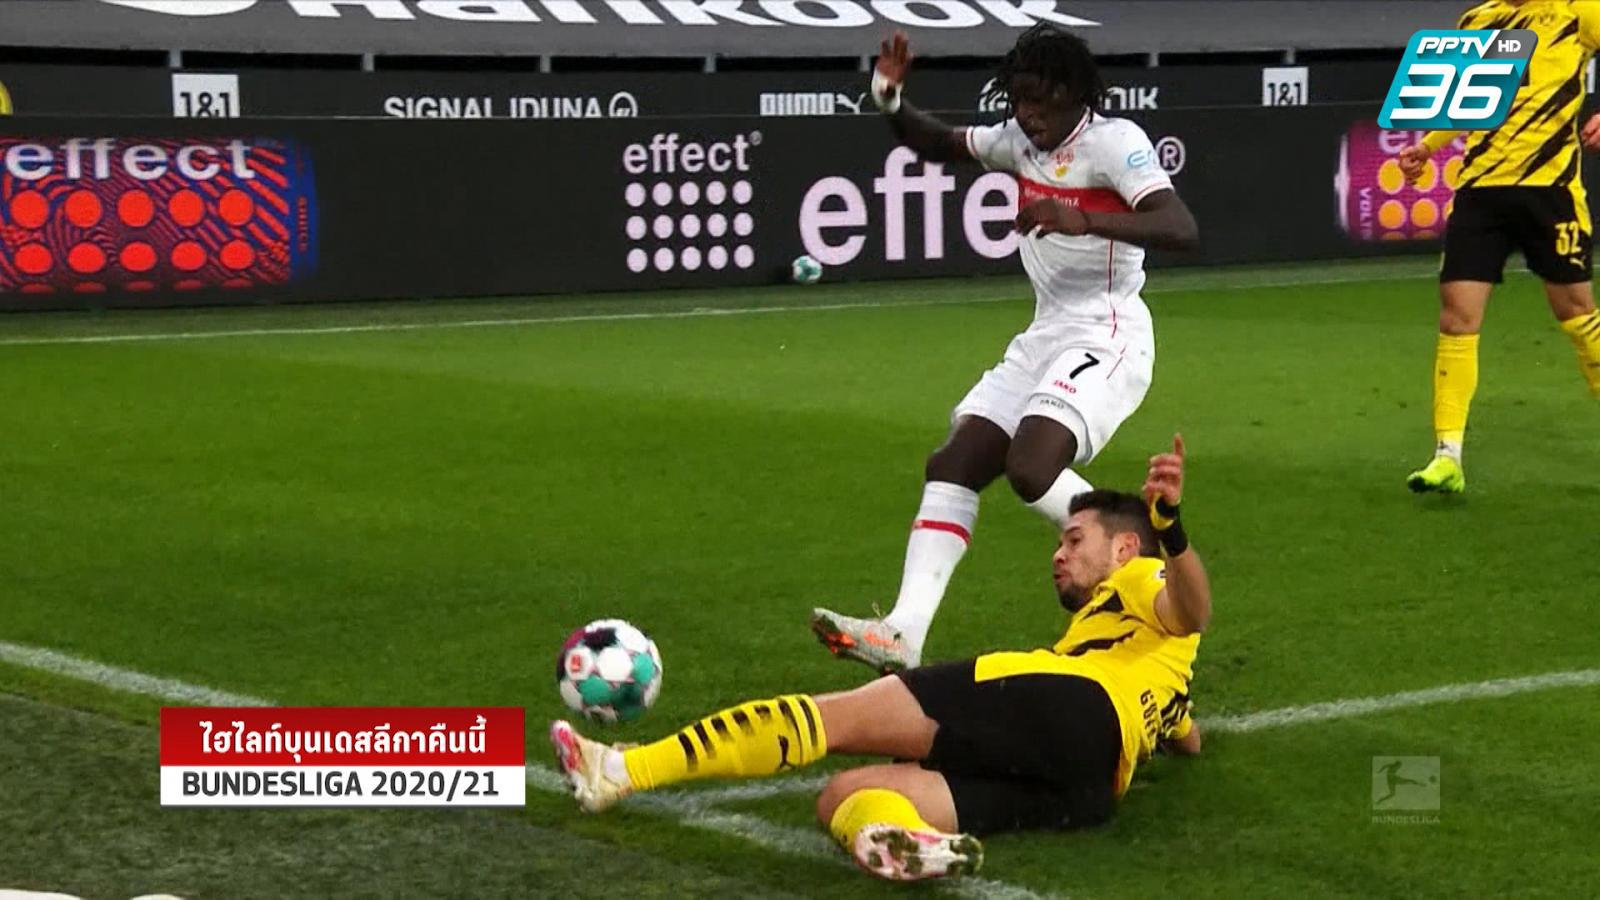 HIGHLIGHTS BUNDESLIGA EP.13